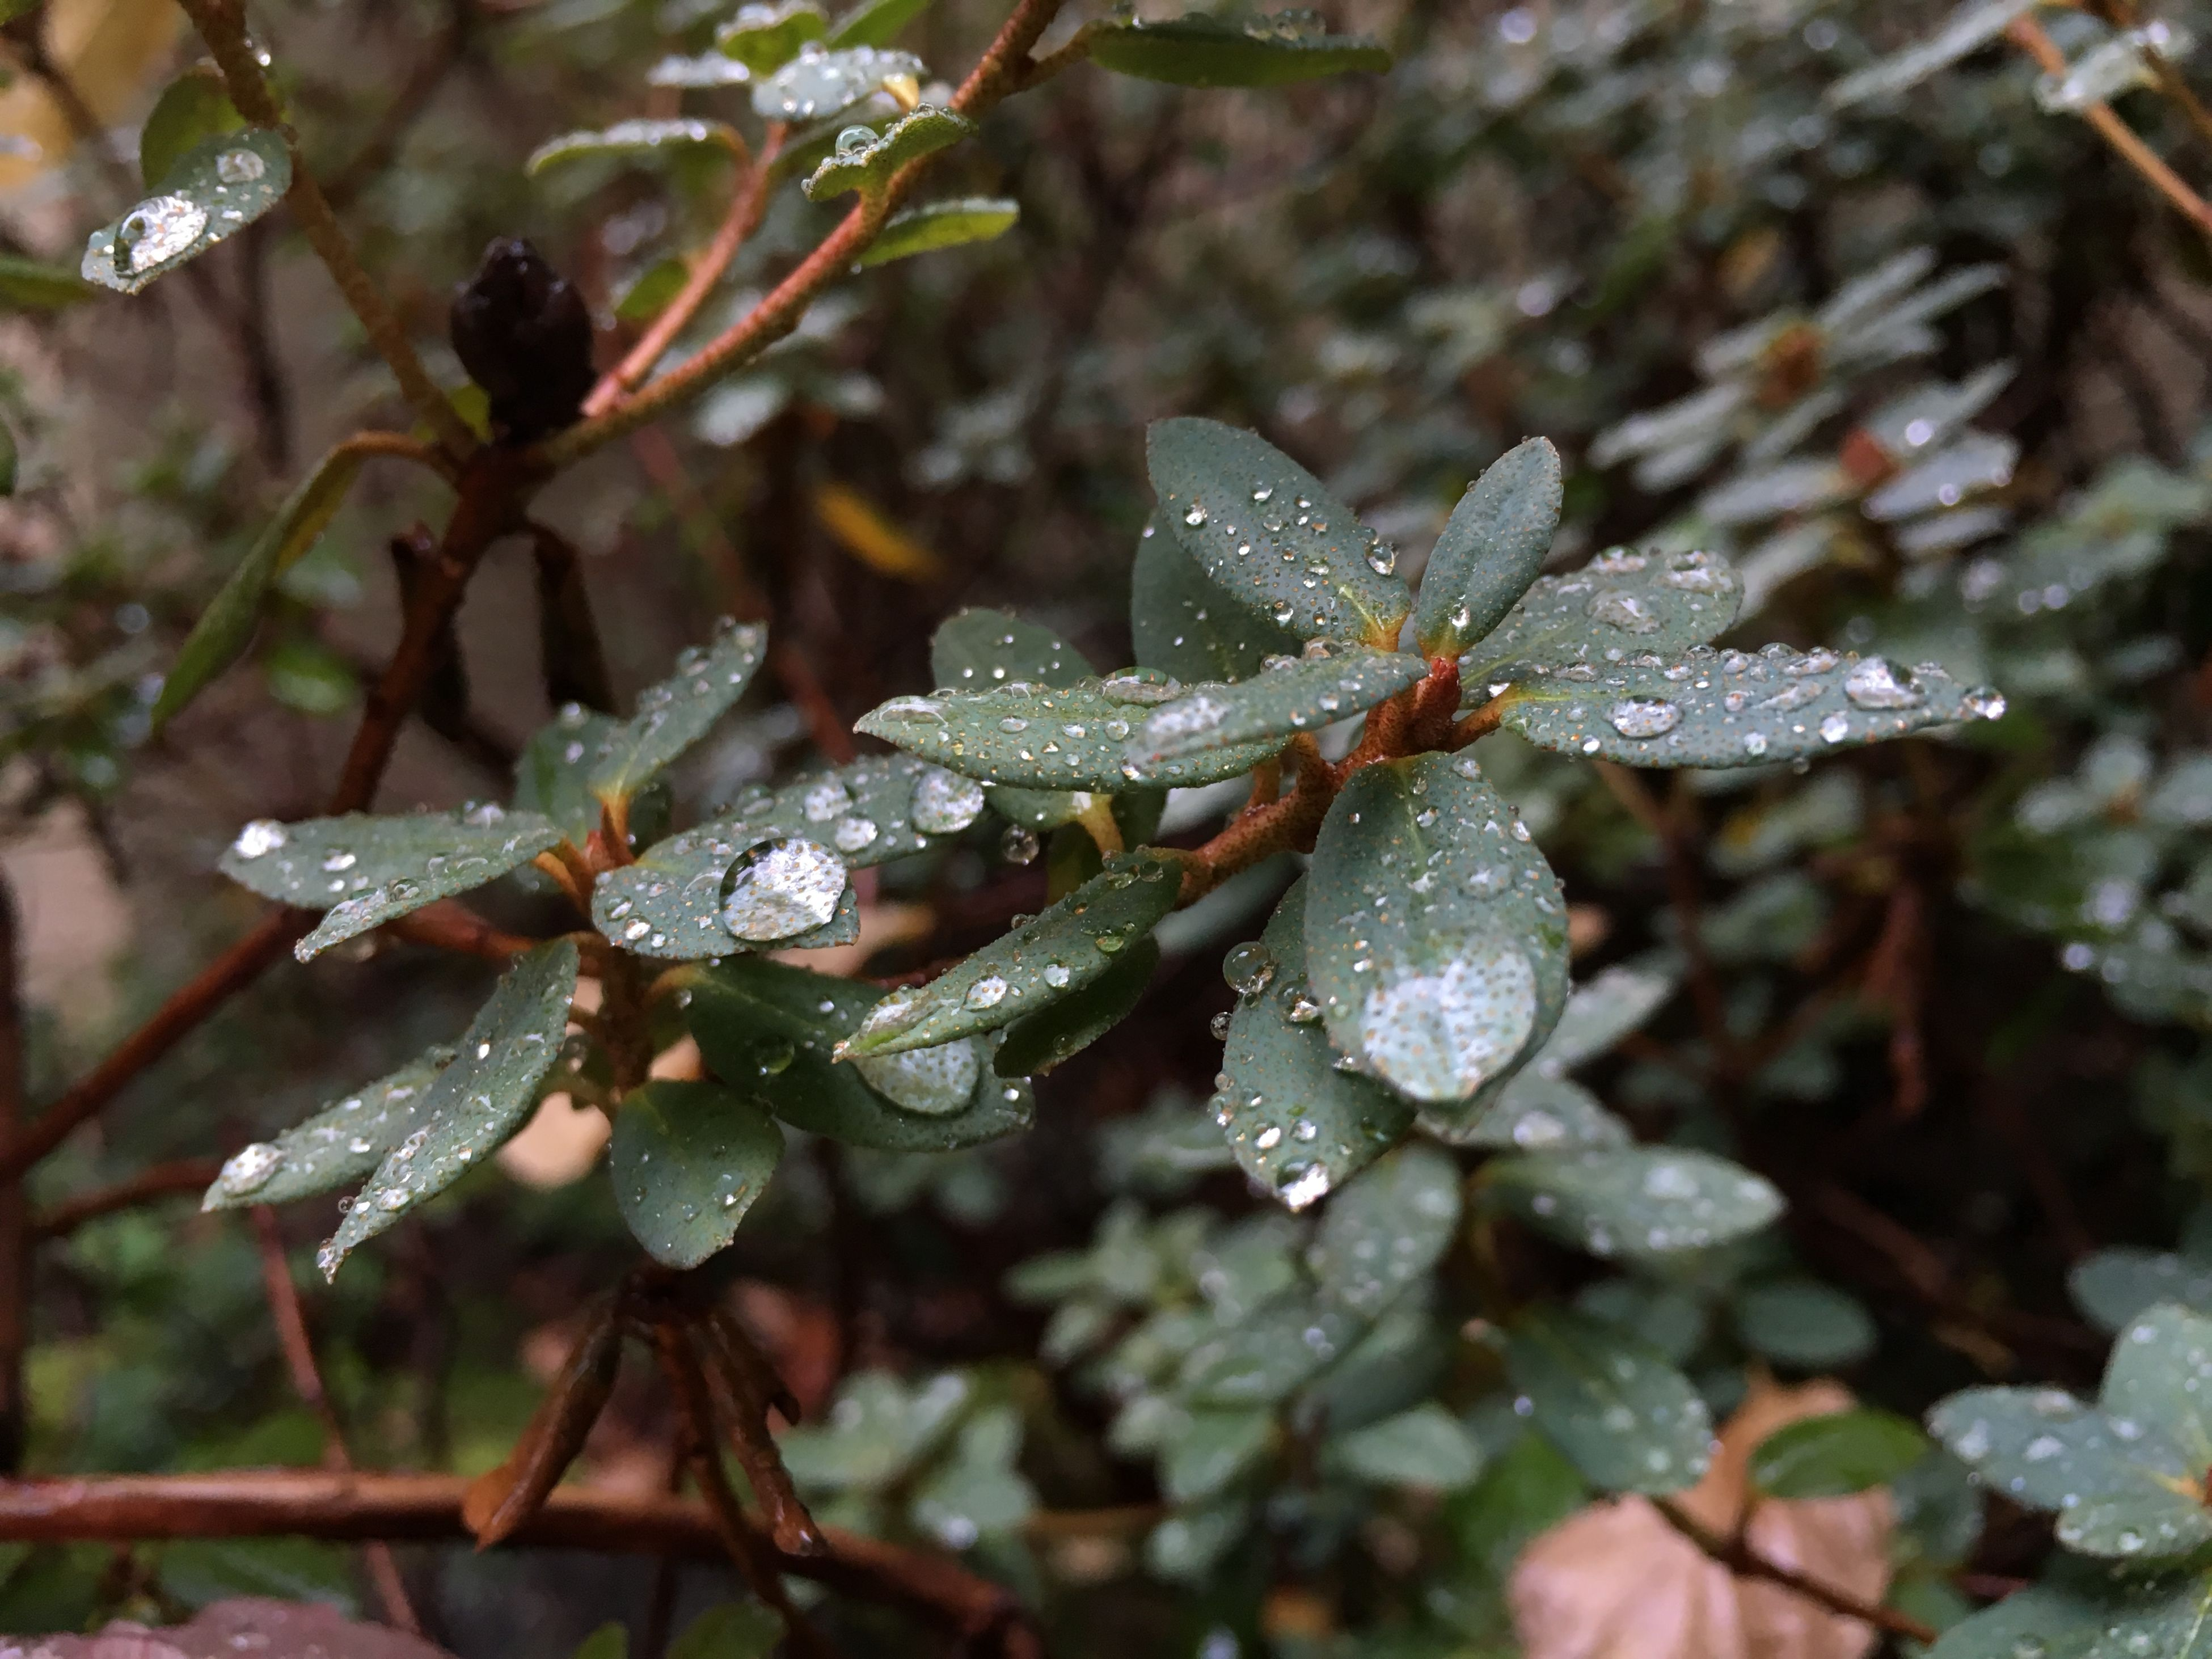 drop, wet, water, weather, close-up, cold temperature, winter, season, nature, snow, growth, dew, focus on foreground, frozen, leaf, raindrop, rain, freshness, plant, fragility